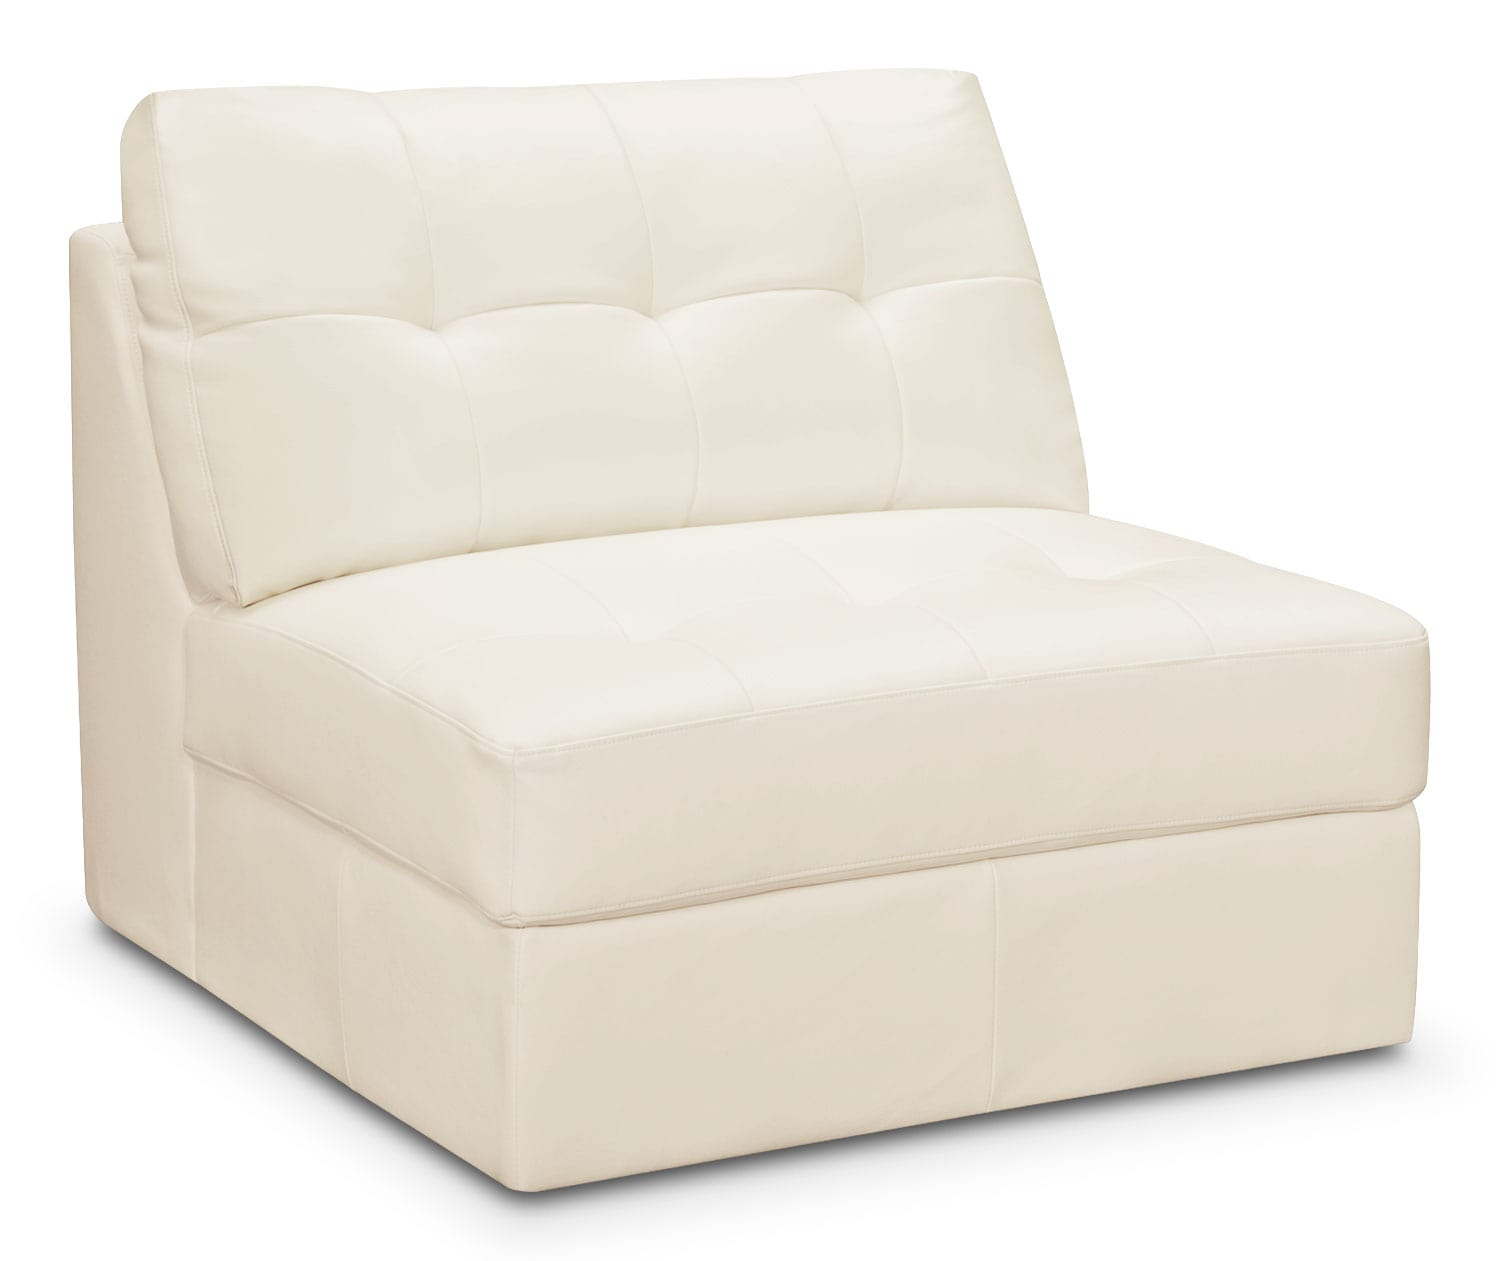 Cayenne Armless Chair - White